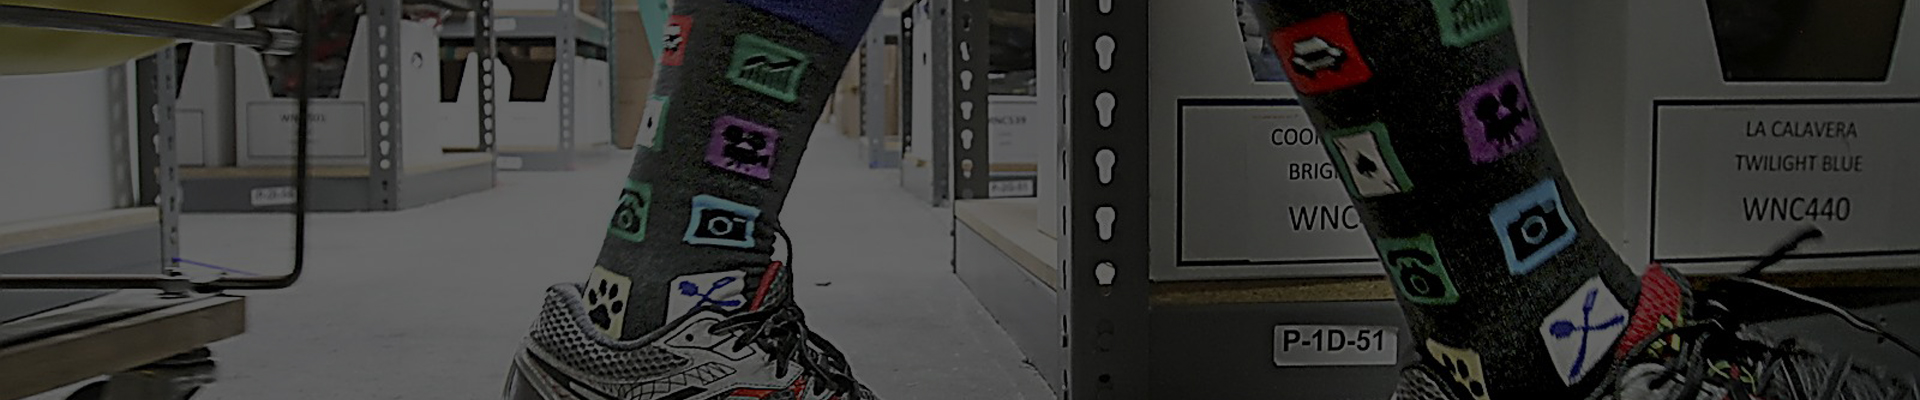 Socks online | Buy Now on Xtreme-Skate.com